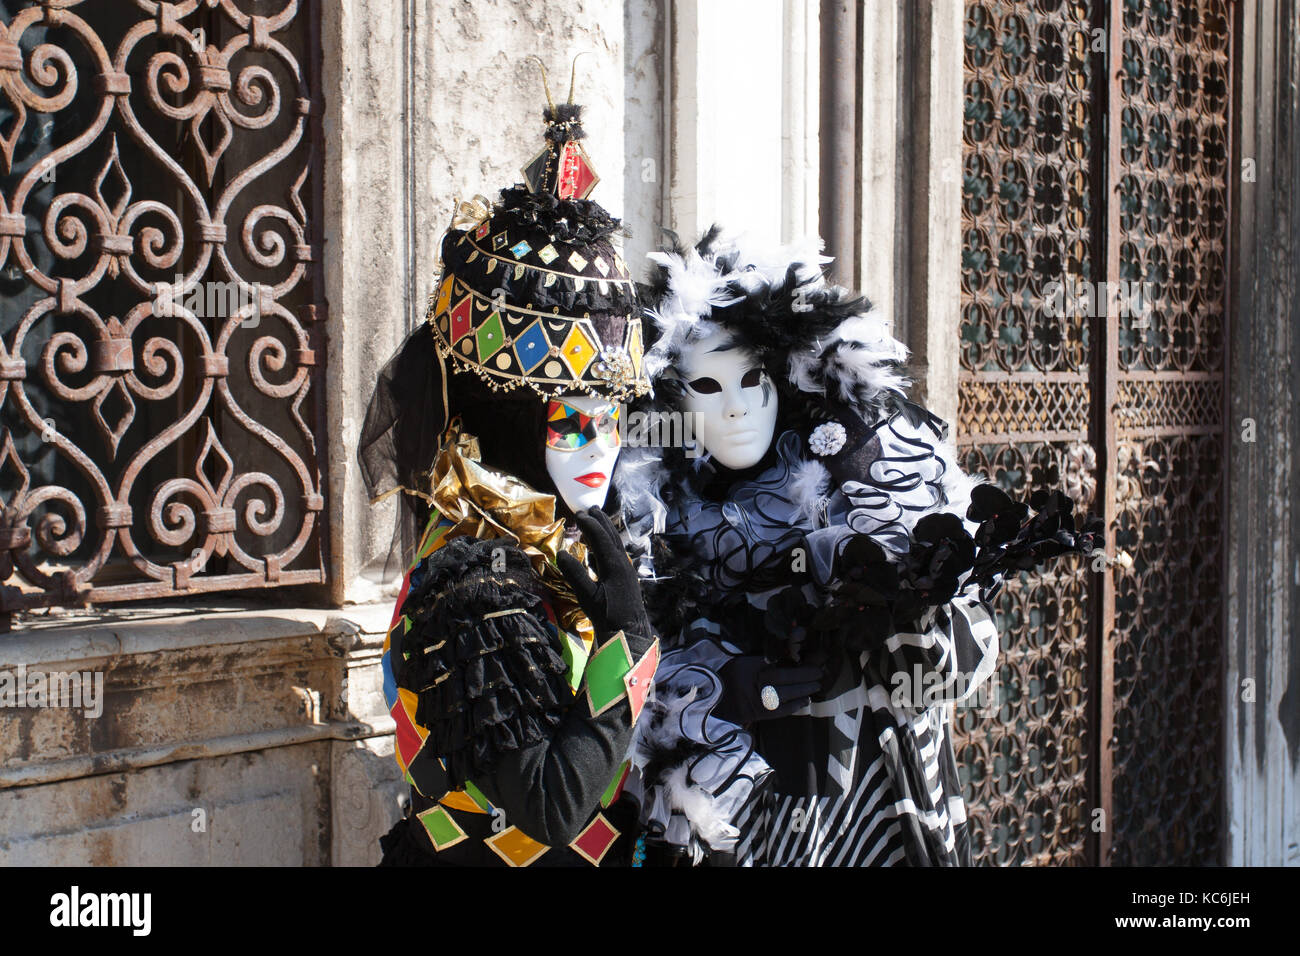 Couple of carnival costumes, with black and white plumes and coloured squares, from the Carnival of Venice, surrounded - Stock Image